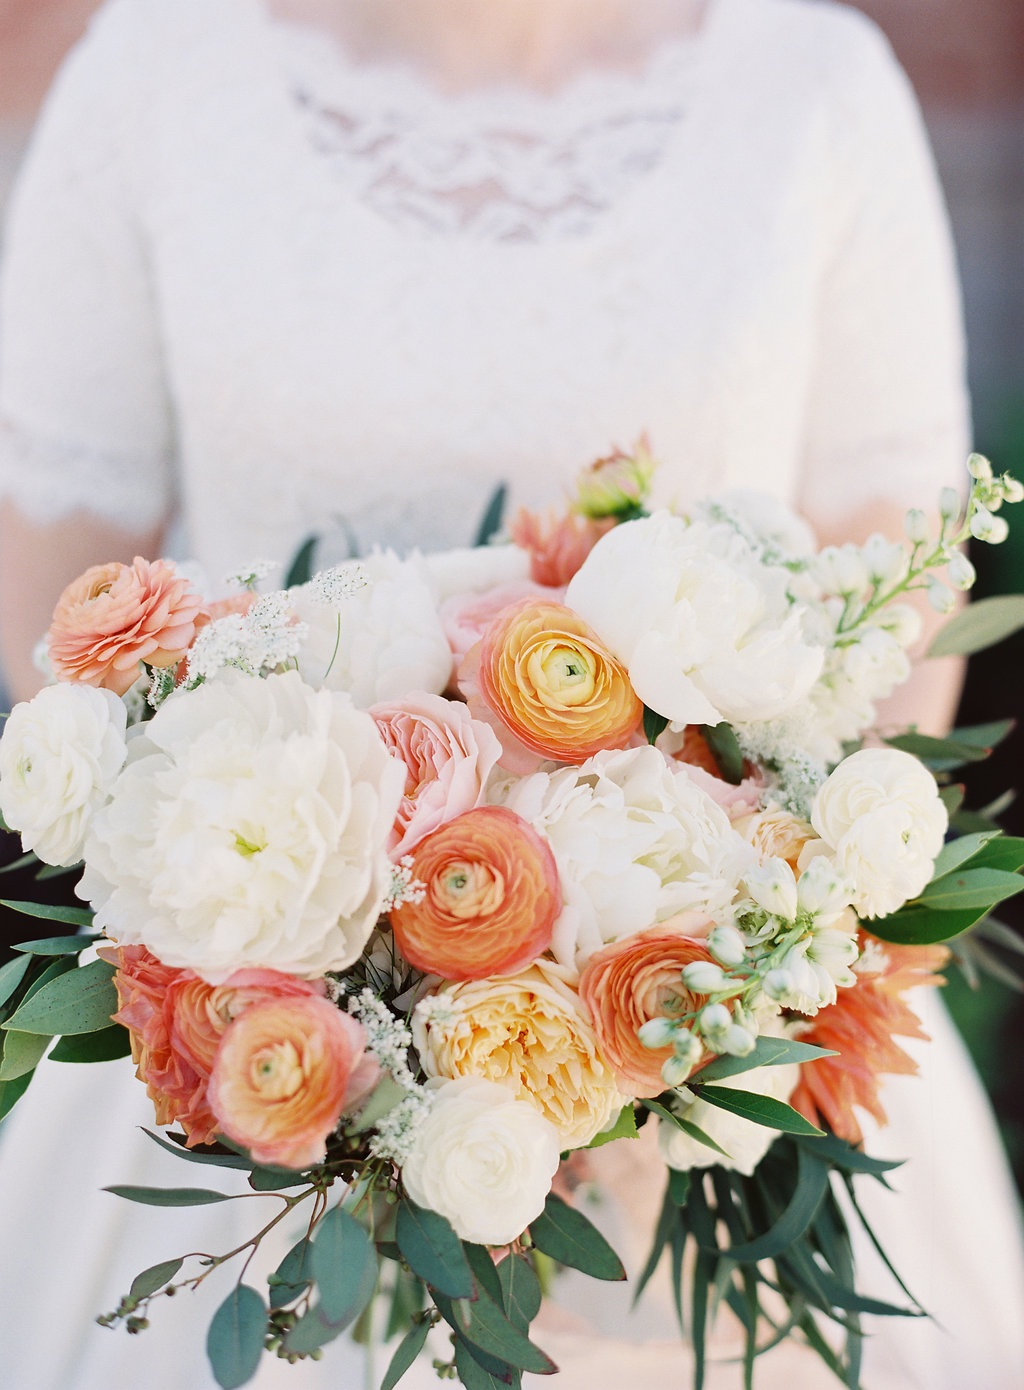 Destination Utah Memorial House Wedding at Memory Grove Flowers Calie Rose peach ivory mint wedding bouquet juliet peach garden rose white peony peach ranunculus wedding bouquet inspiration peach ivory cream mint wedding flowers gorgeous peach wedding bouquets